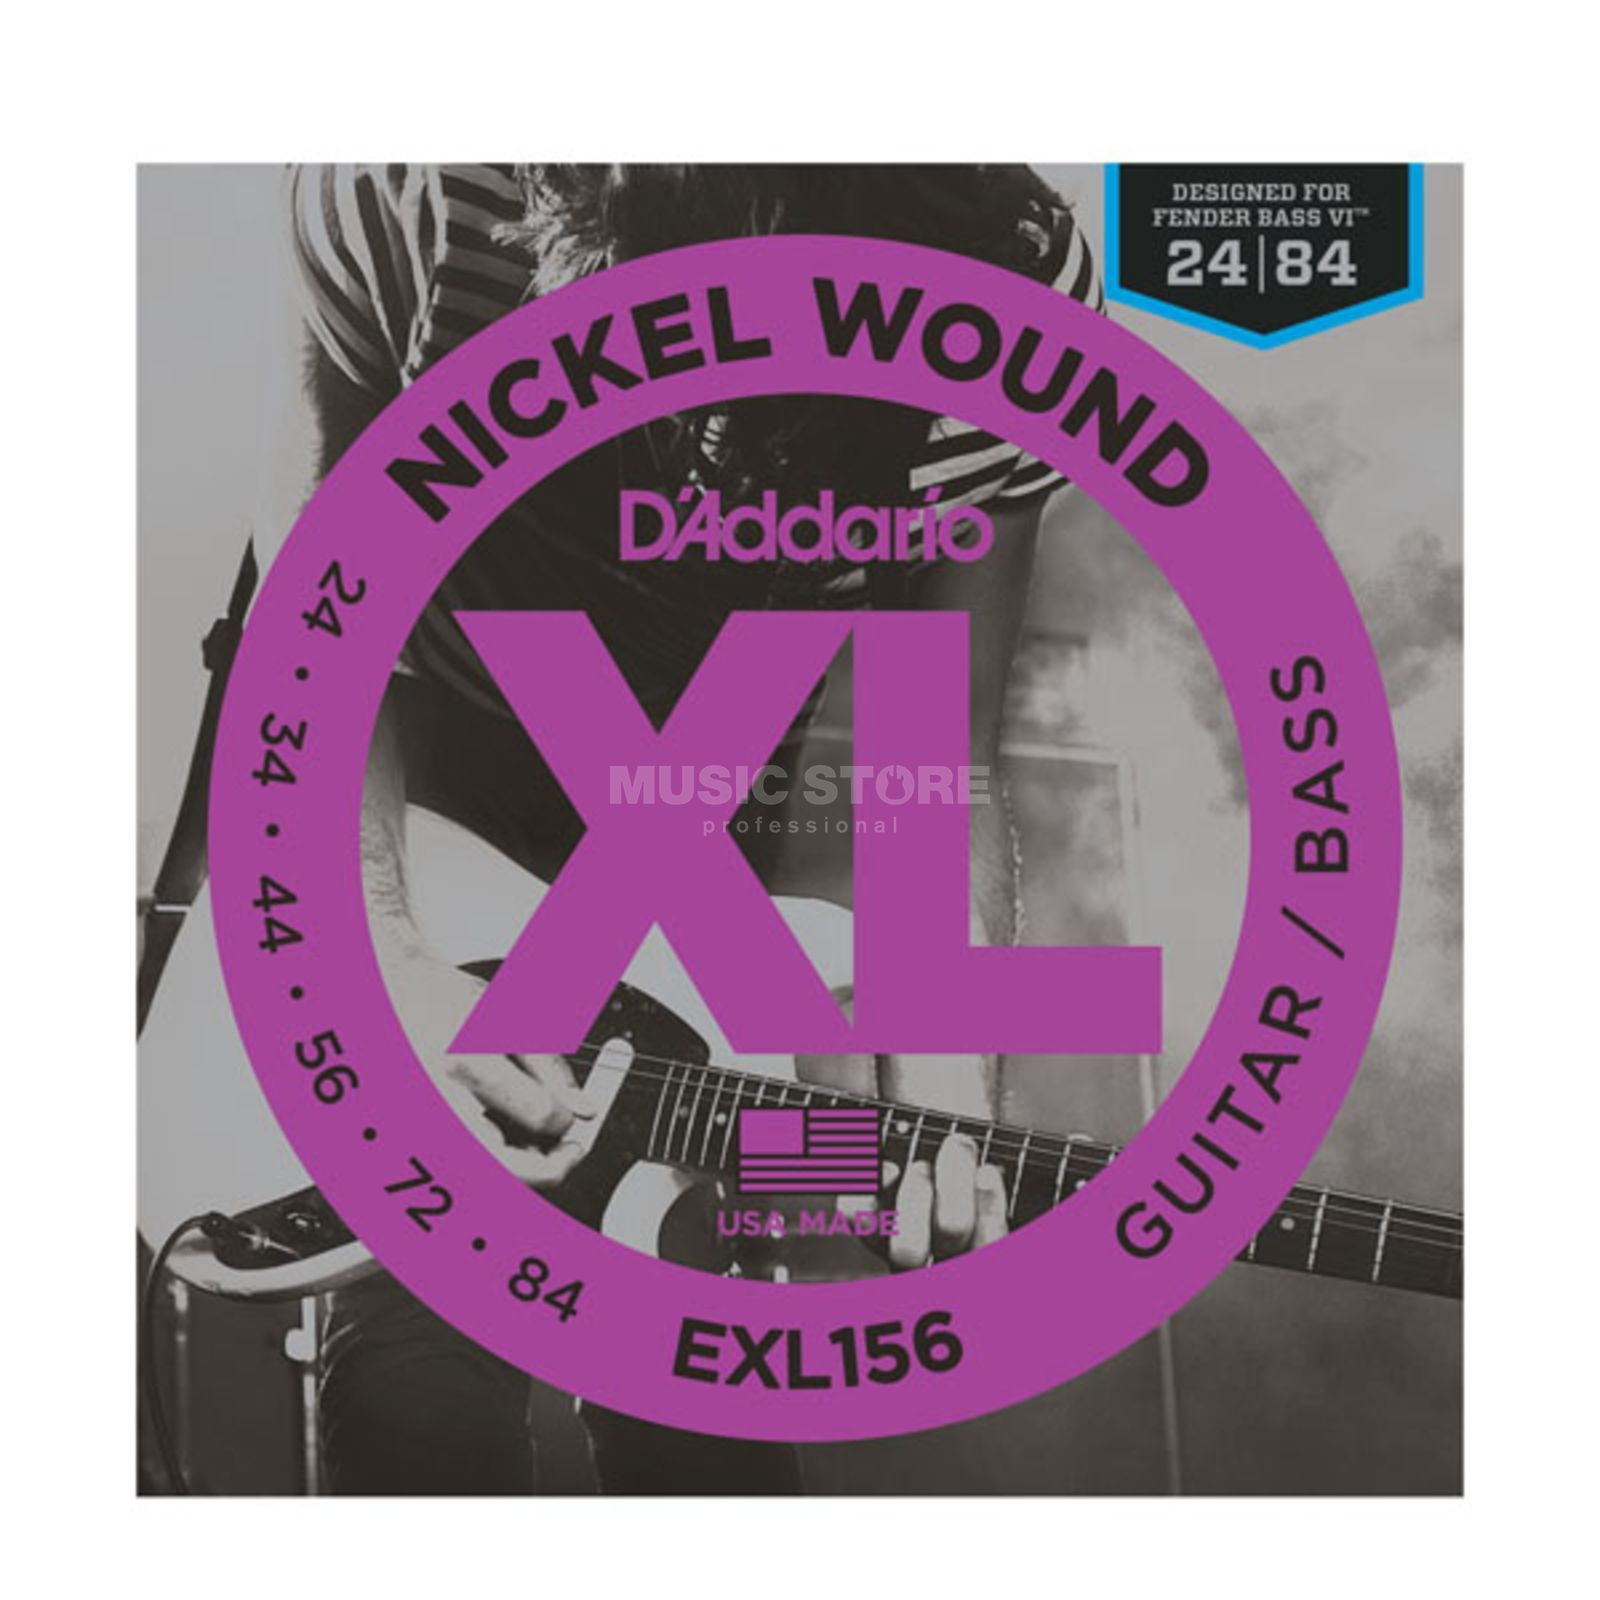 D'Addario E-Guit./Bass Strings XL156 24- 84,Nickel Wound,Fender Bass VI Изображение товара